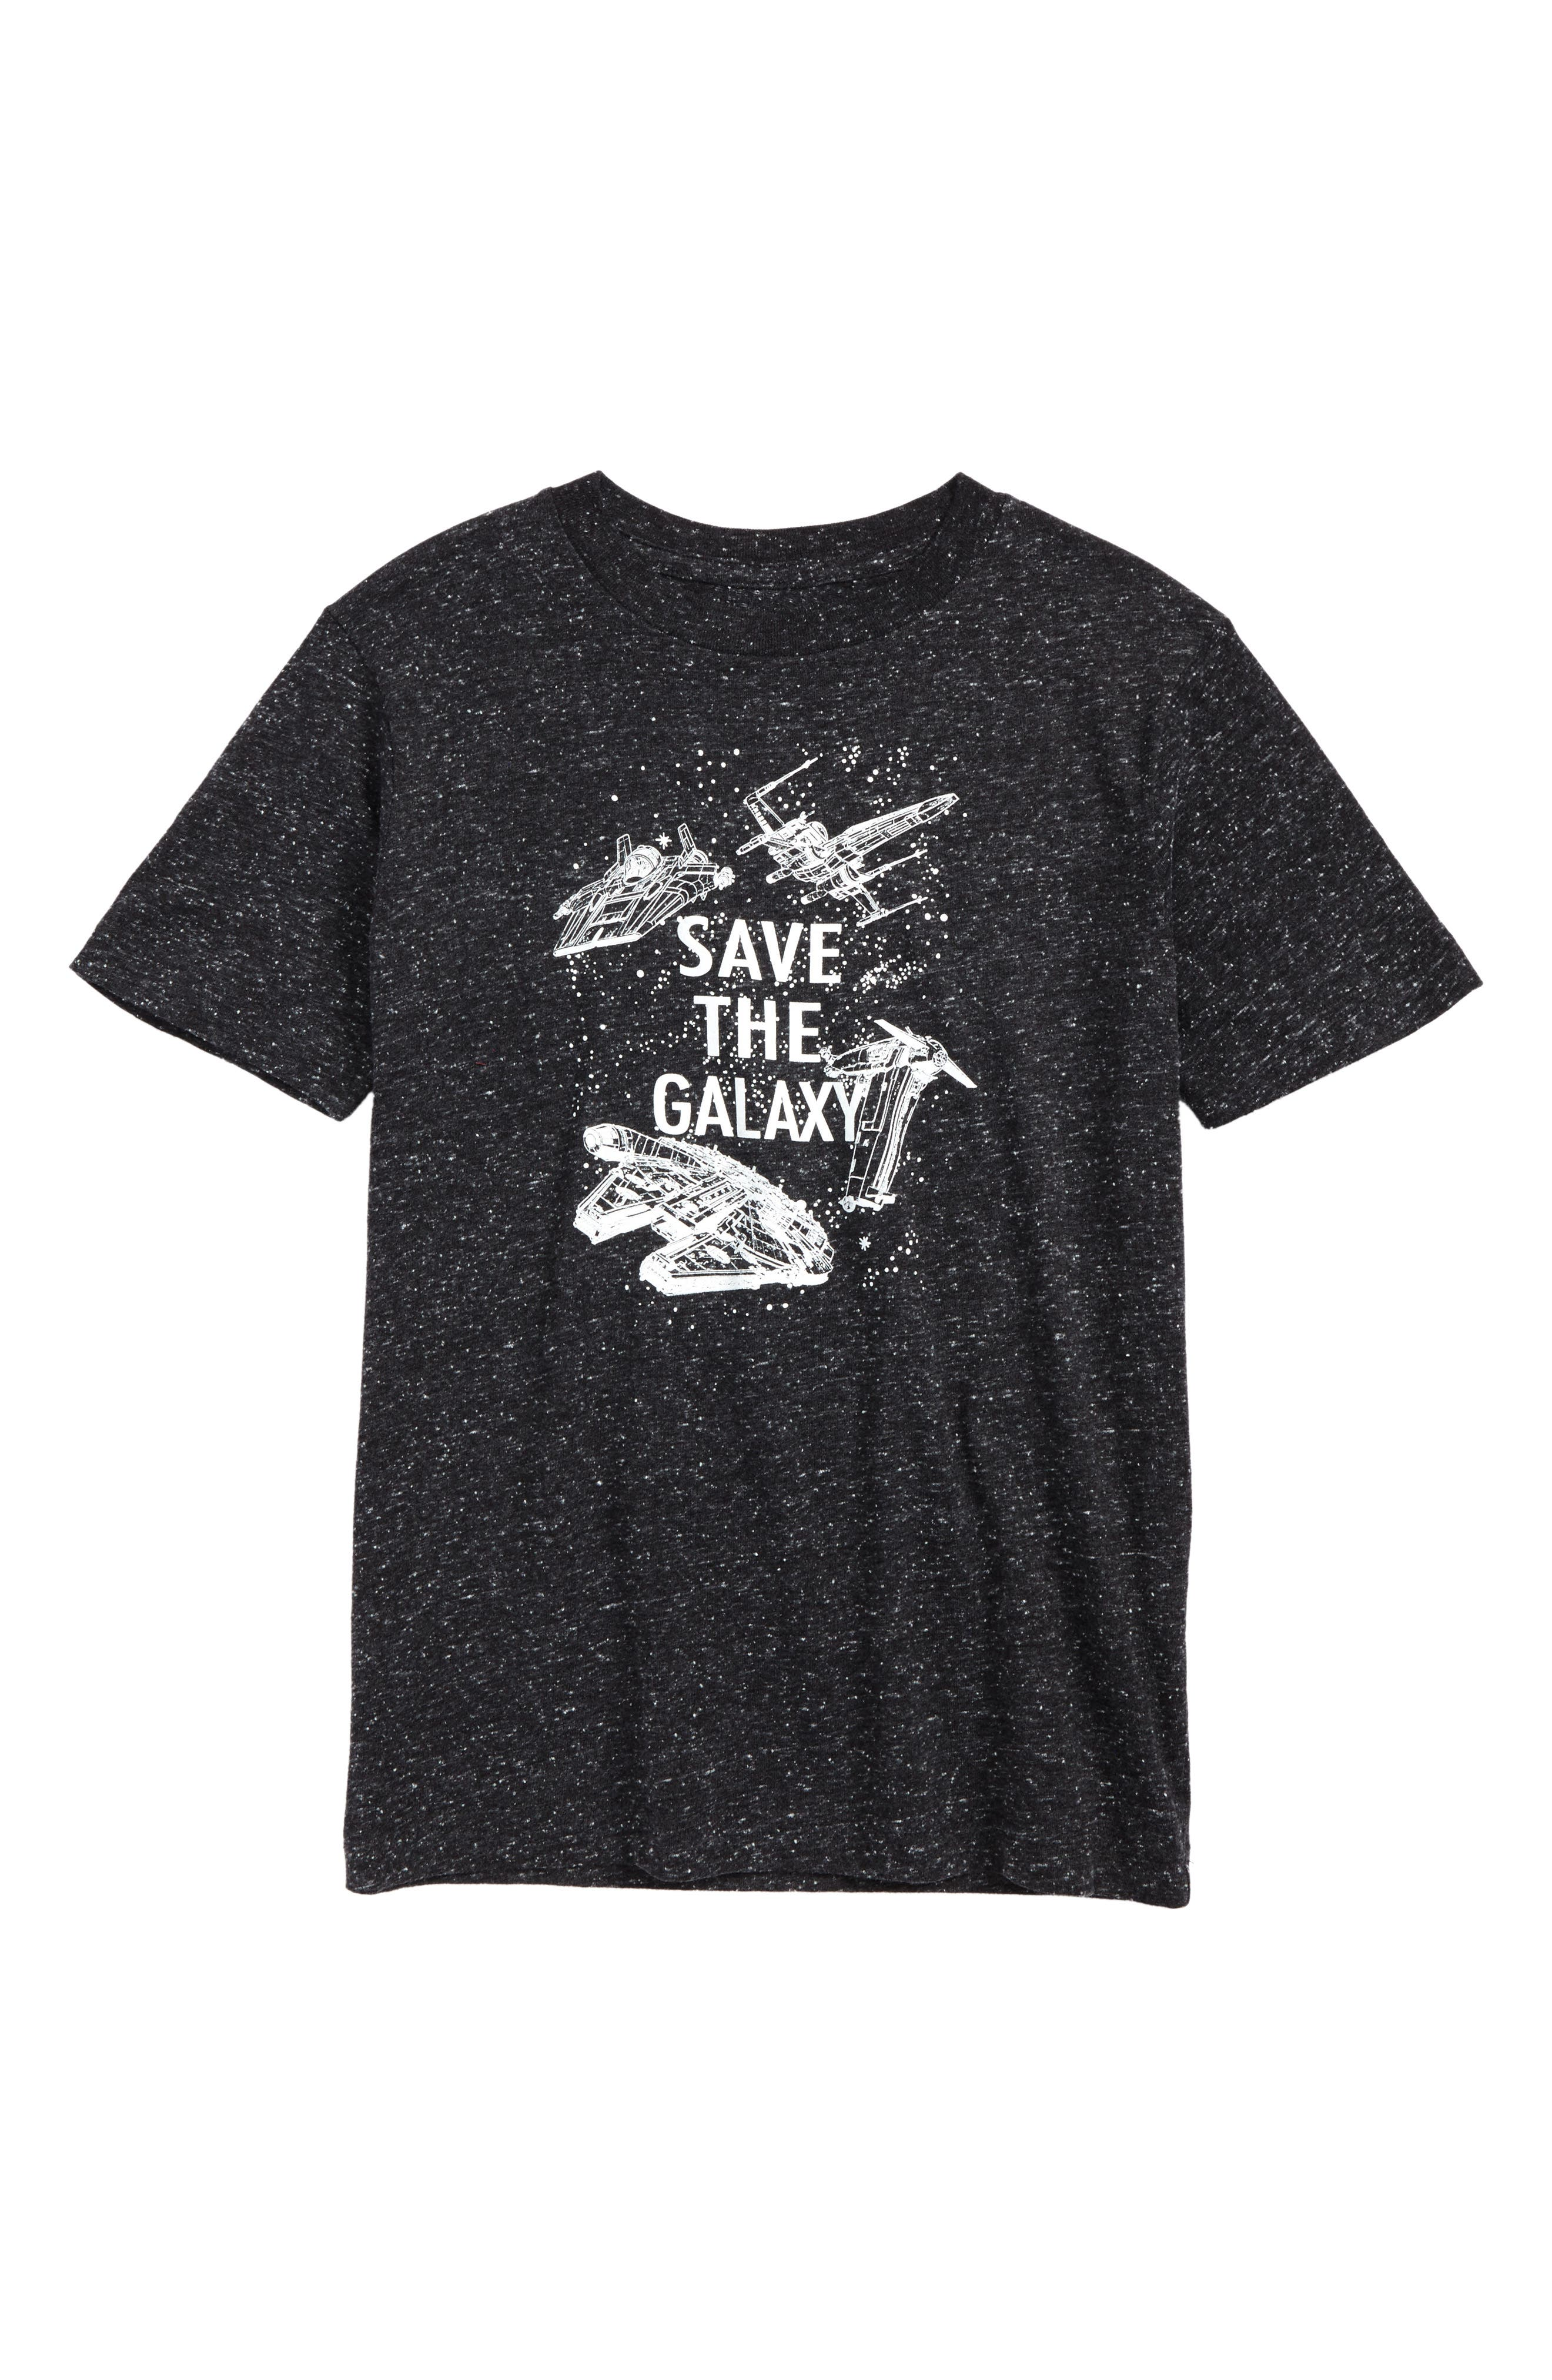 Alternate Image 1 Selected - Jem Star Wars - Save the Galaxy Glow in the Dark T-Shirt (Big Boys)